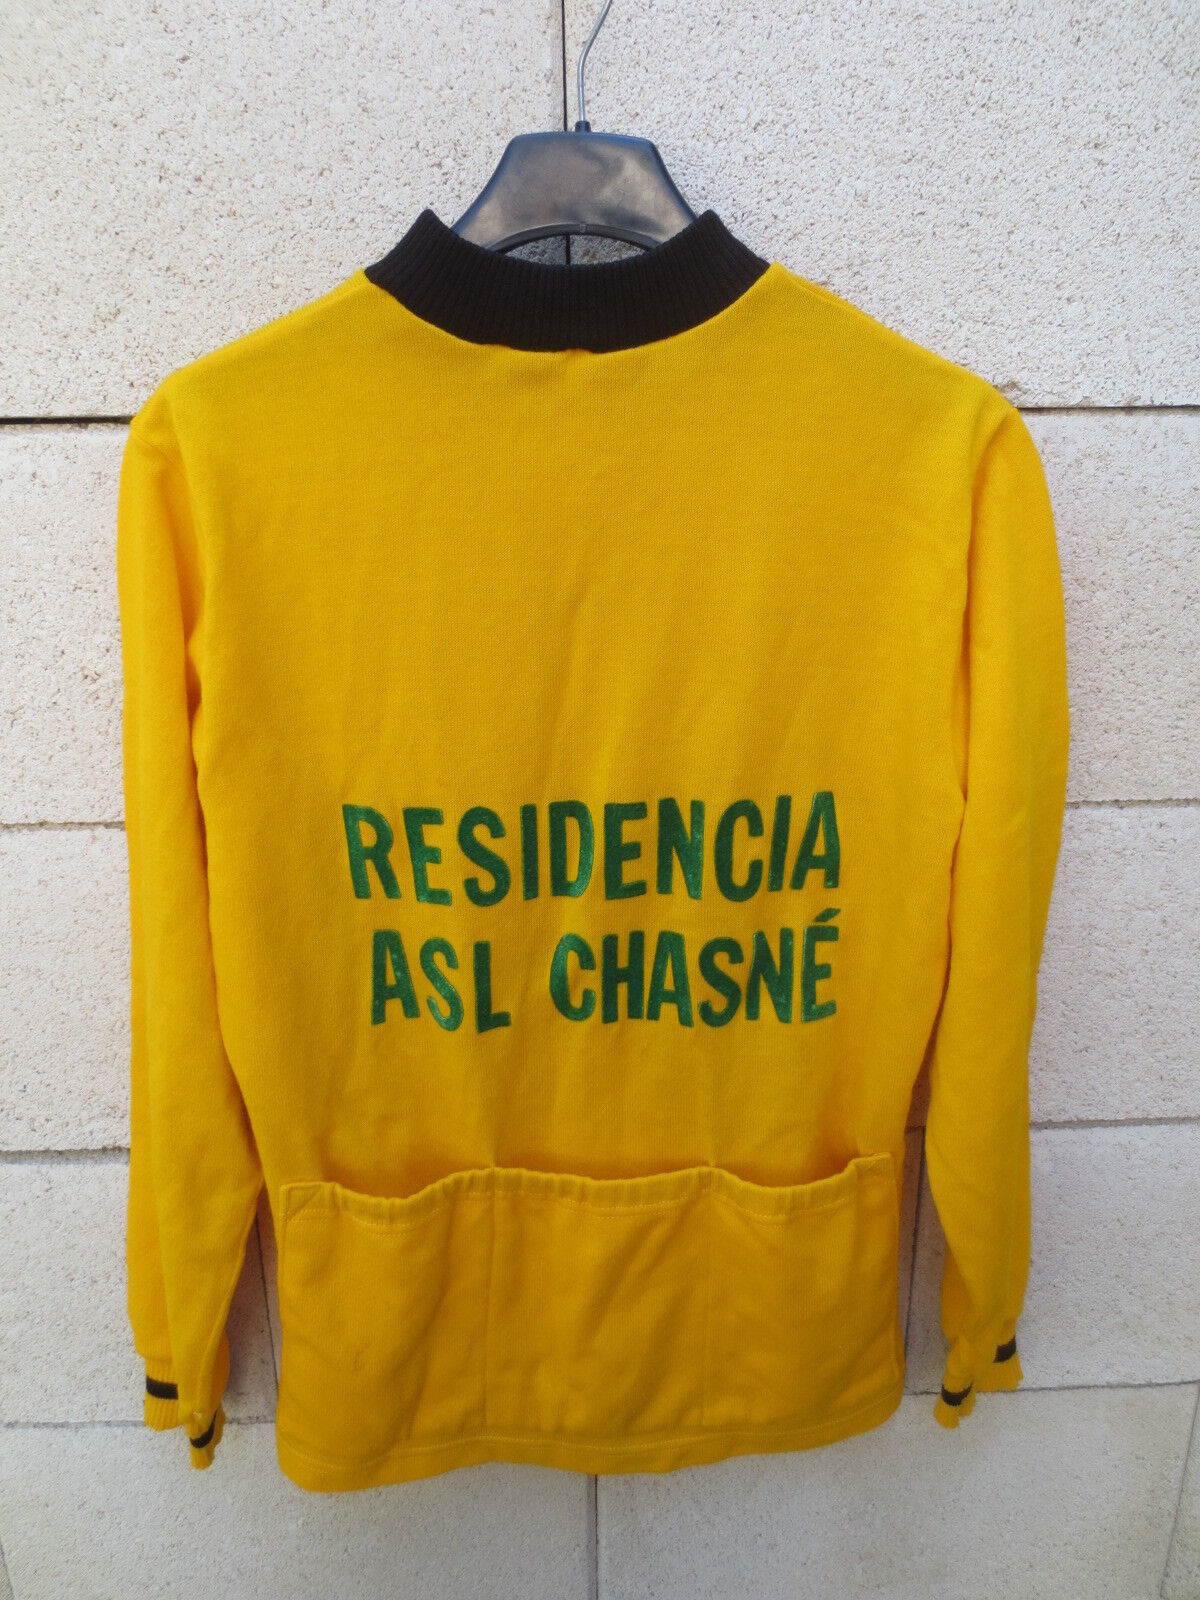 VINTAGE Maillot cycliste manches longues RESIDENCIA ASL CHASNE yellow camiseta M